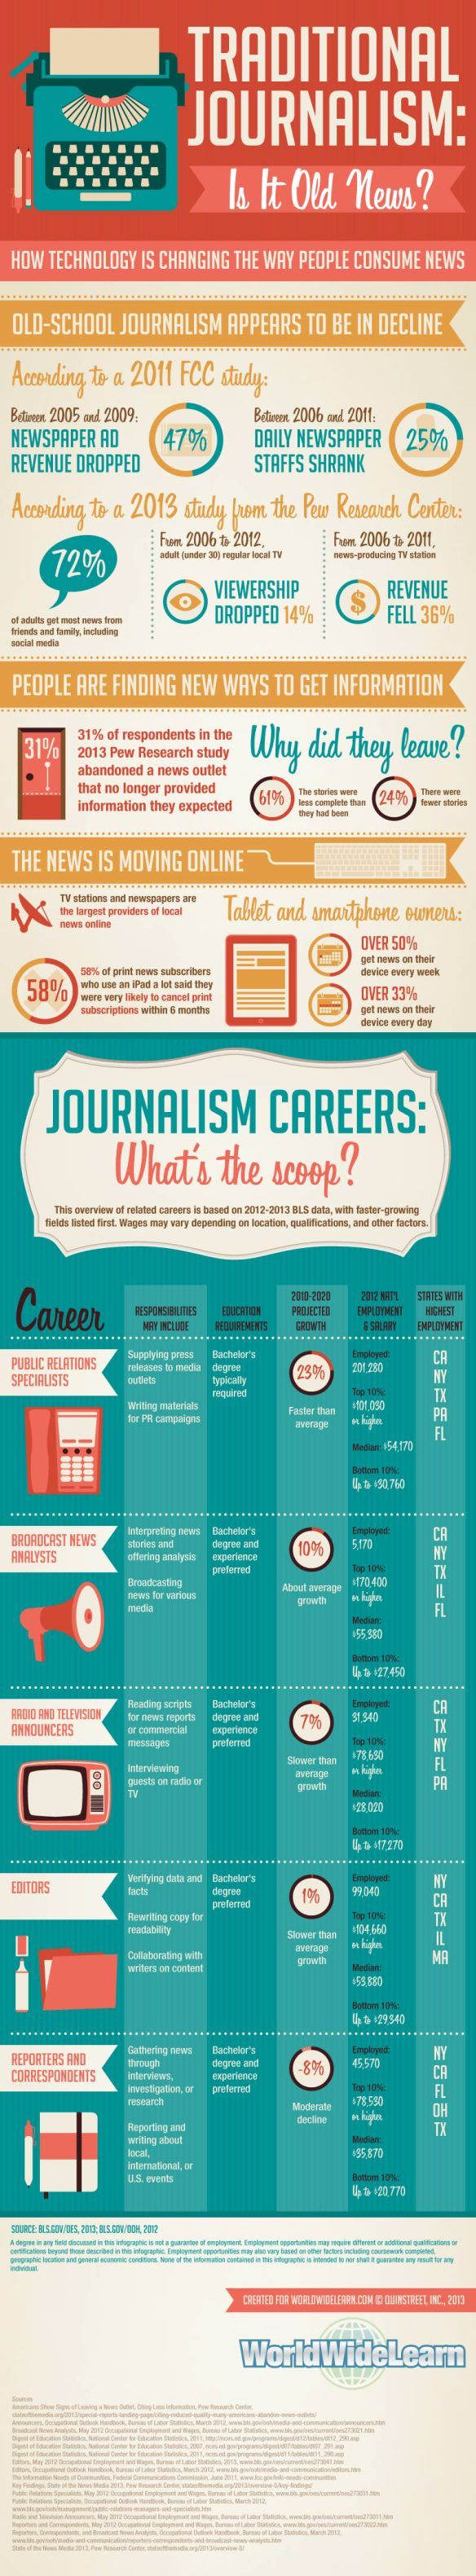 Note: TRADITIONAL journalism may be dying, but not journalism itself. Chins up buttercups!